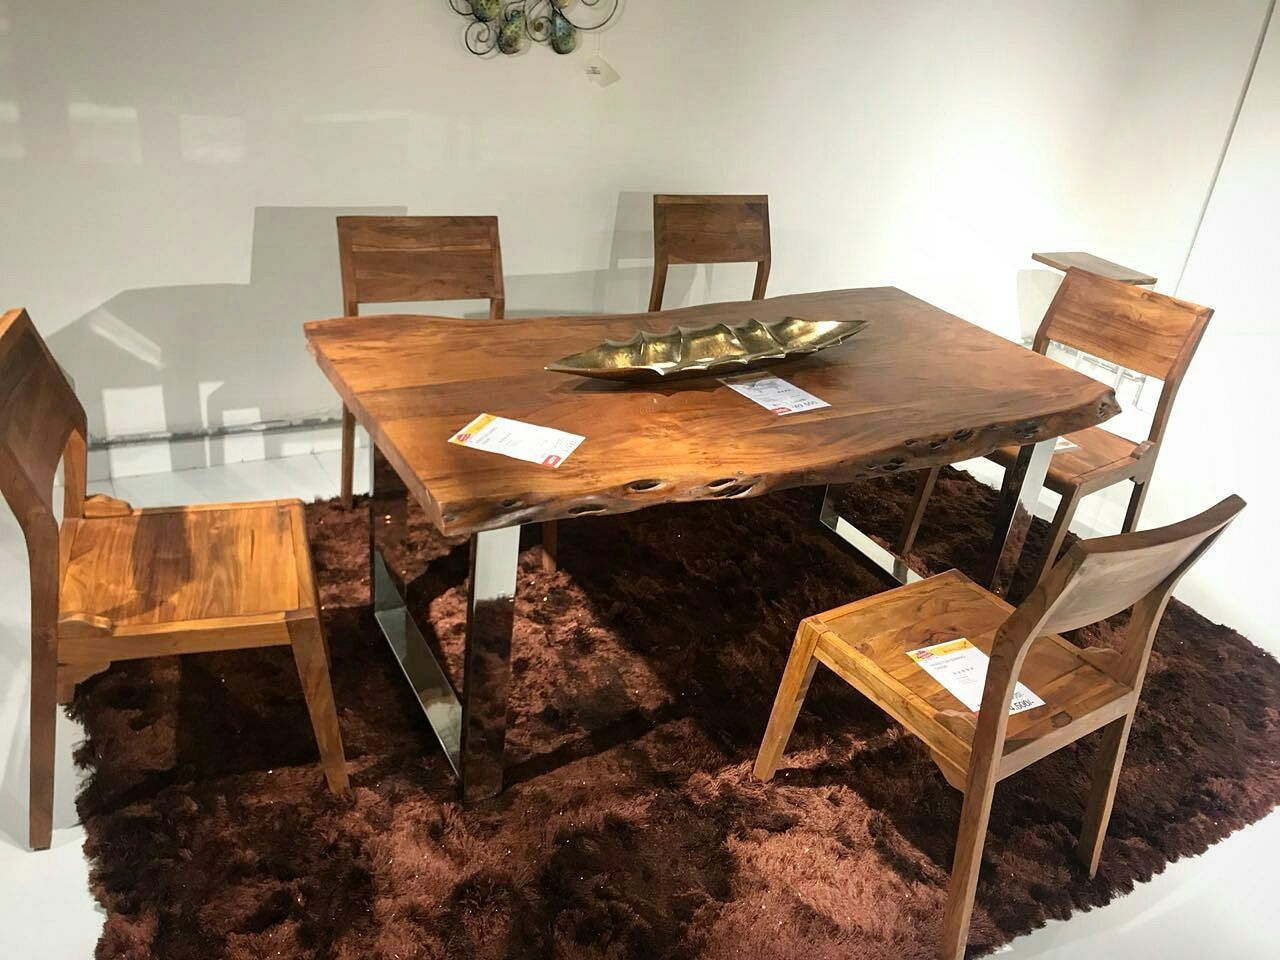 Best of live edgedining set made of beautiful acacia wood to give your dining room an aspiring feel industrial furniture liveedge liveedgetable